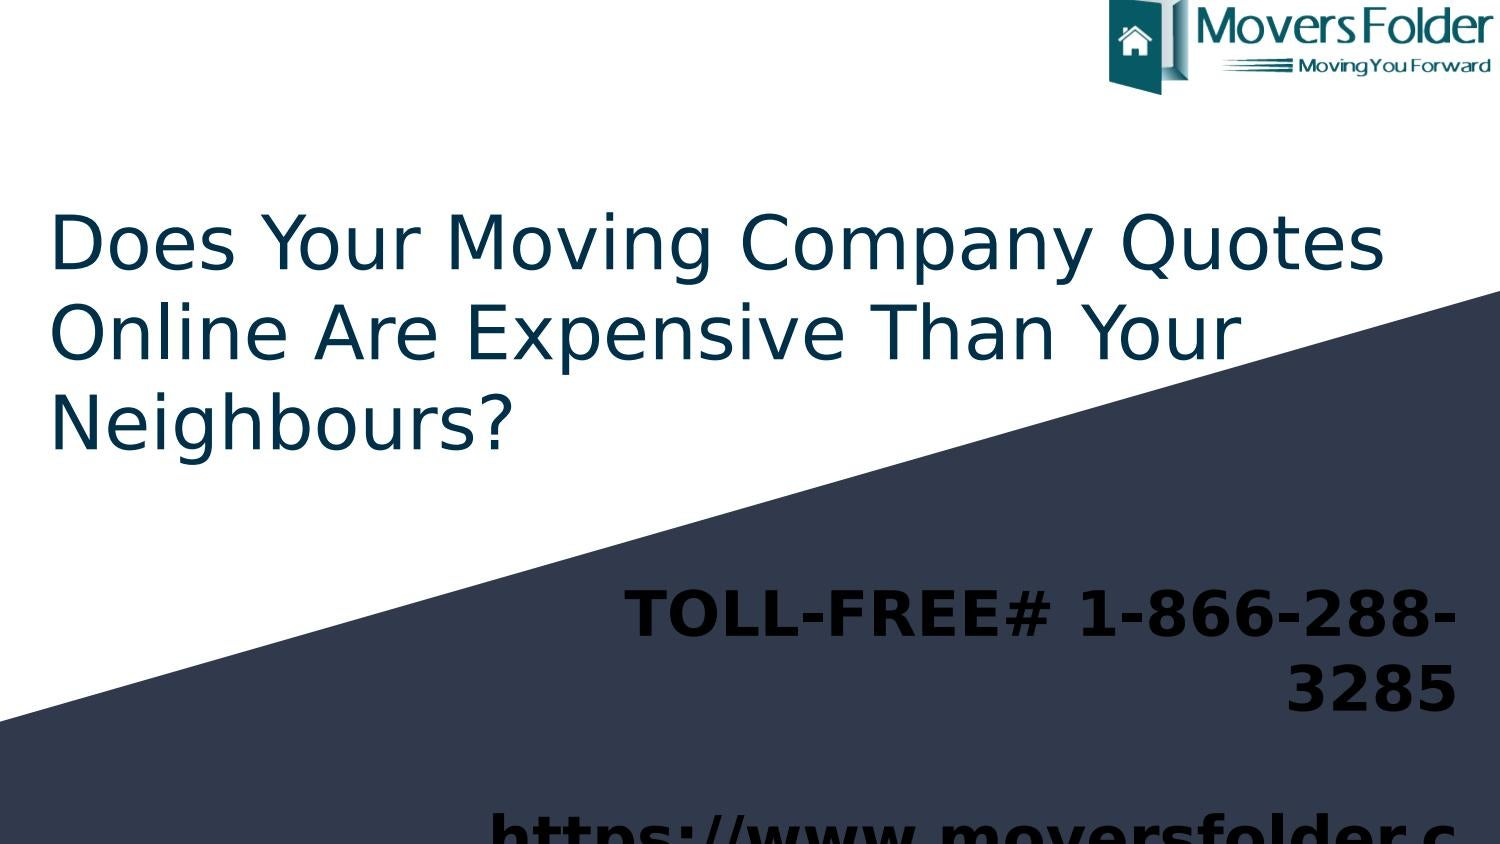 Moving Company Quotes >> Does Your Received Moving Company Quotes Online Expensive